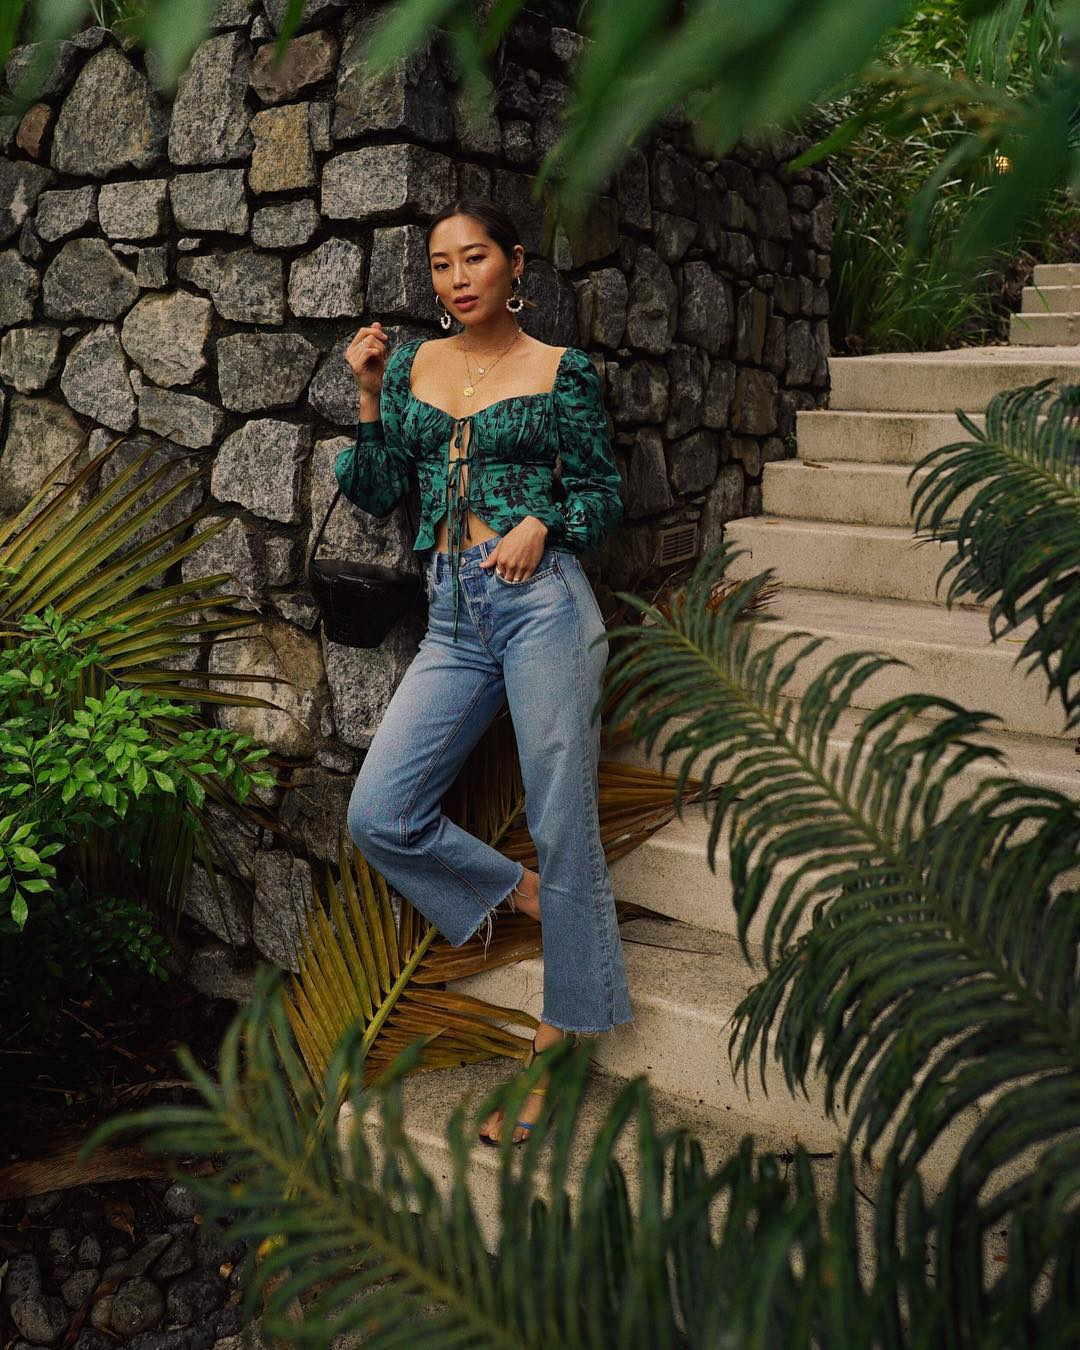 Fashionista Aimee Song mặc quần jeans ống loe và áo in hoa